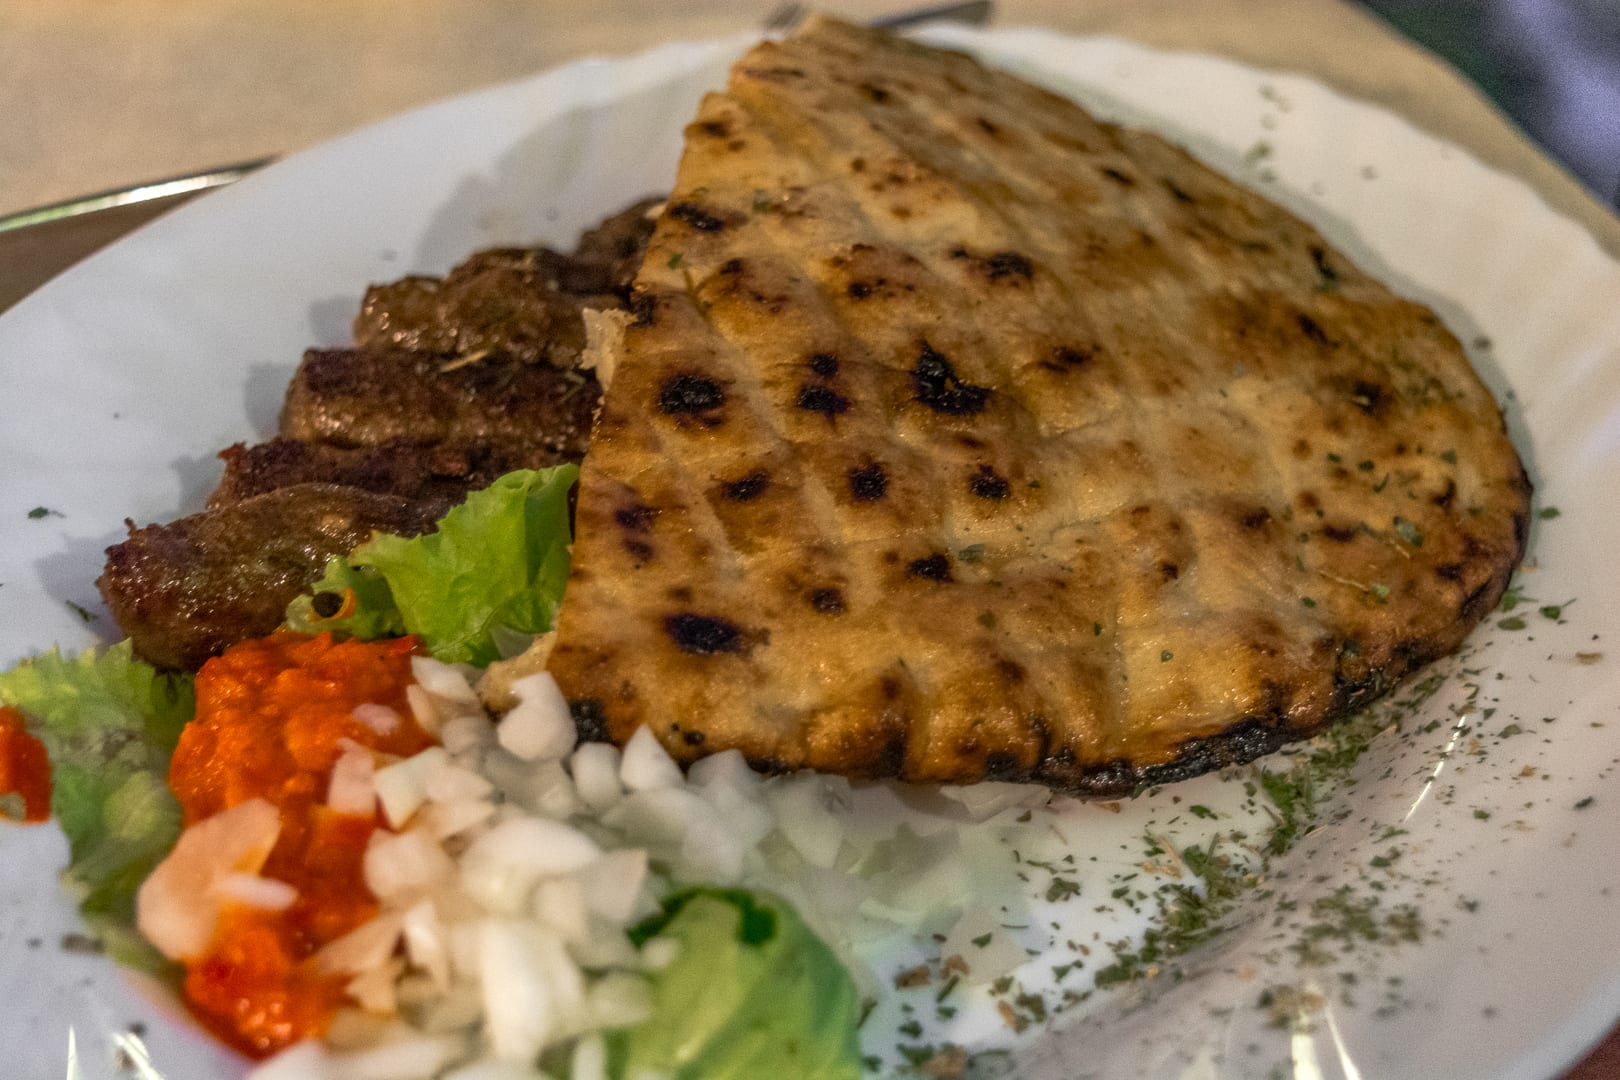 Cevapi - Best Things to Eat in Europe